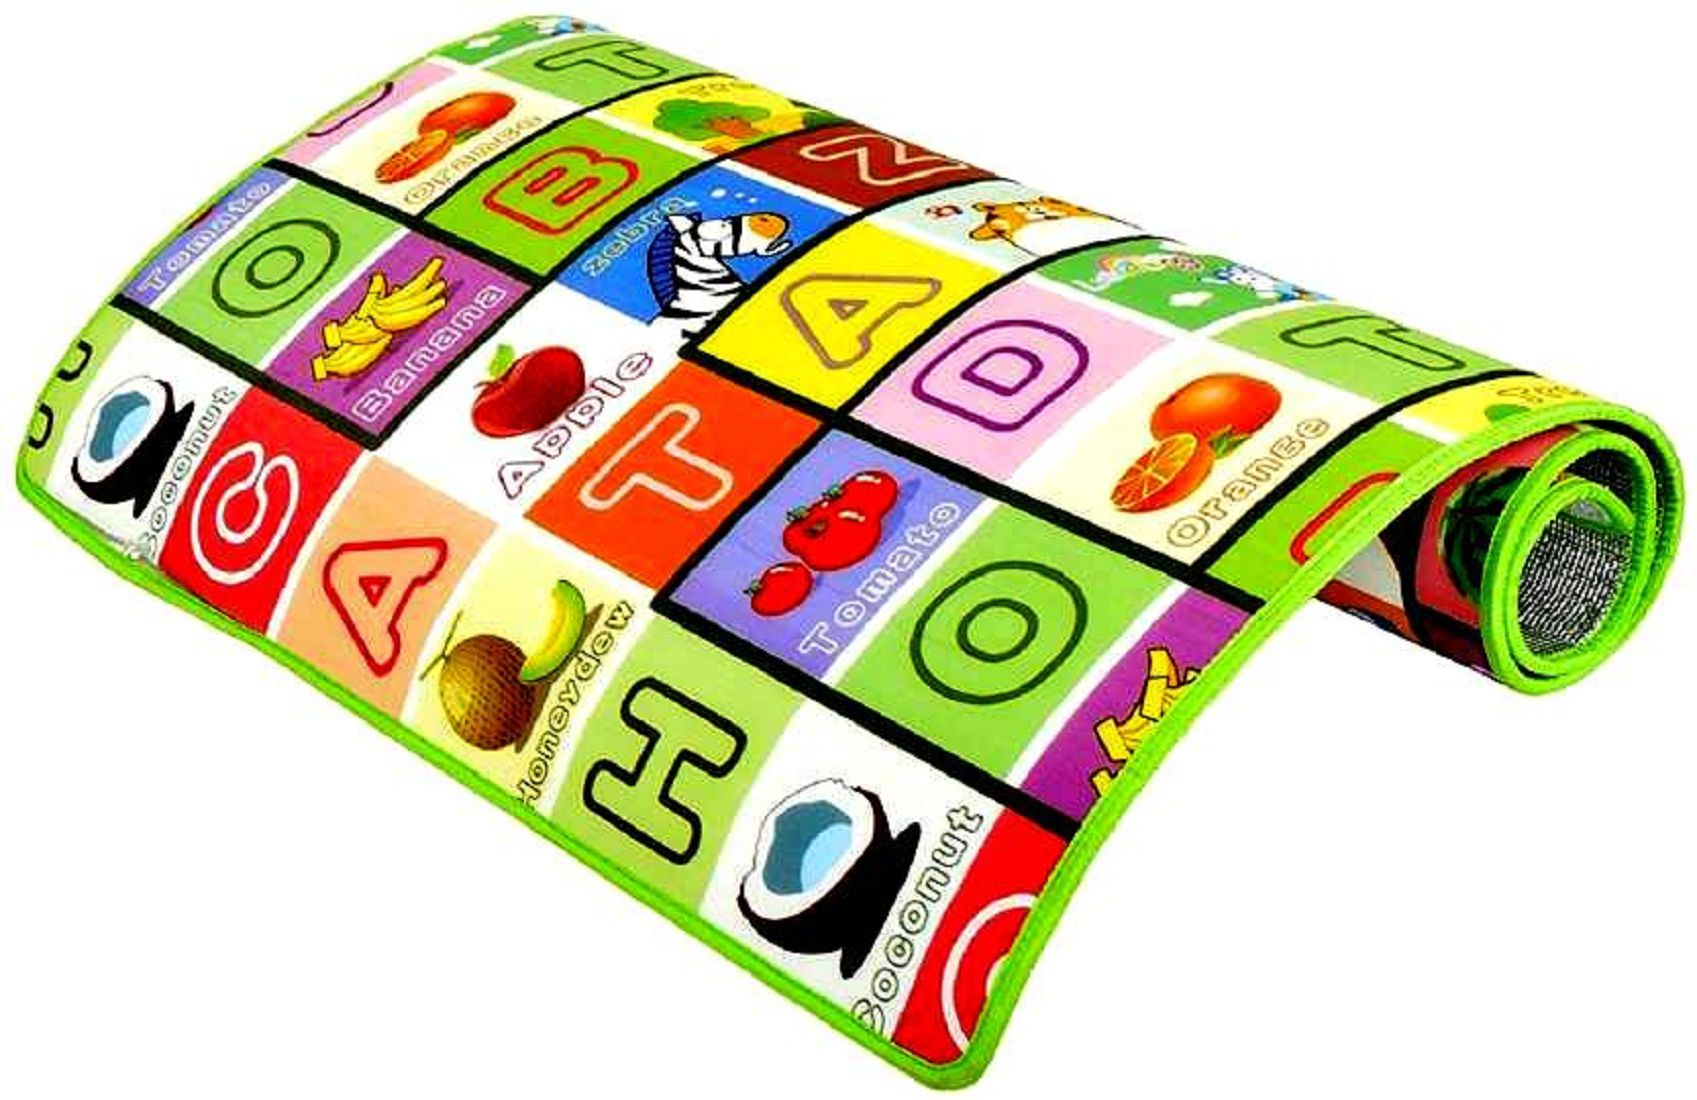 BcH Microfiber Play Mat 100% Waterproof, Anti Skid ,Double Sided Baby Play & Crawl Mat (6'X4' Feet)  (Multicolor, Large)